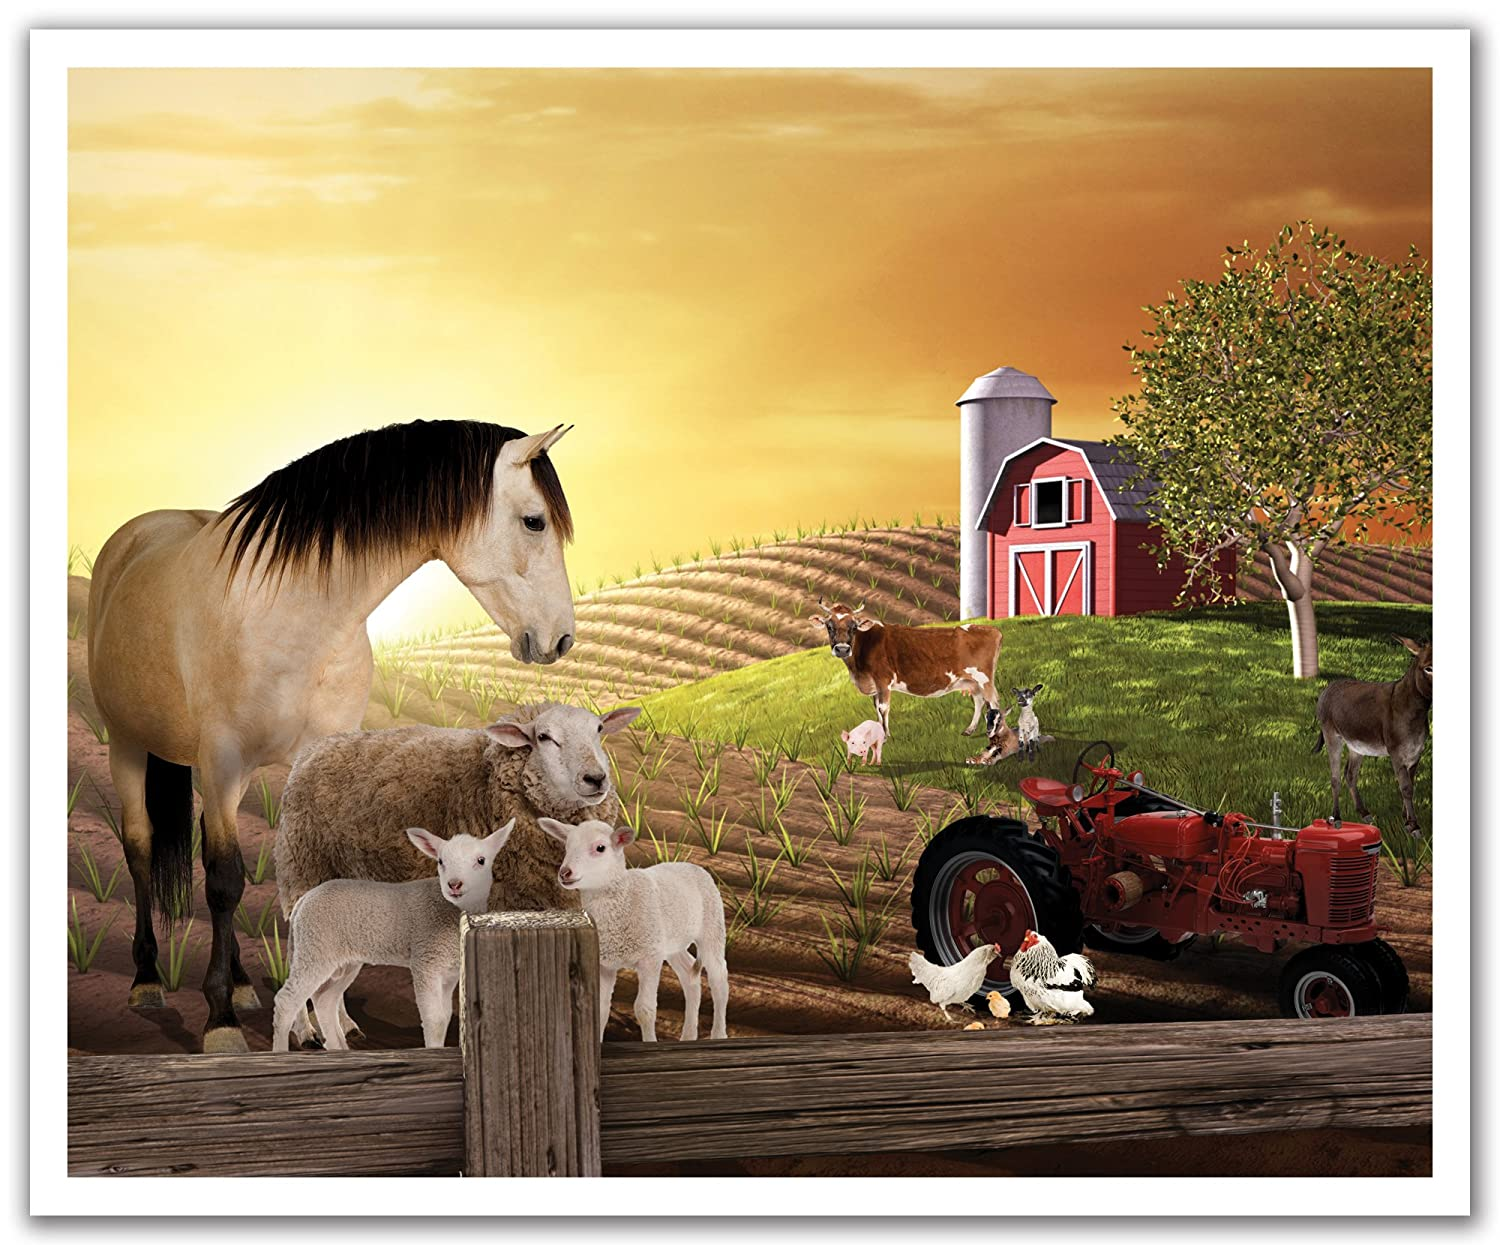 Animal Farm Sepia Horse 24 by 19.75-Inch POS2006 JP London Peel and Stick Removable Wall Decal Sticker Mural